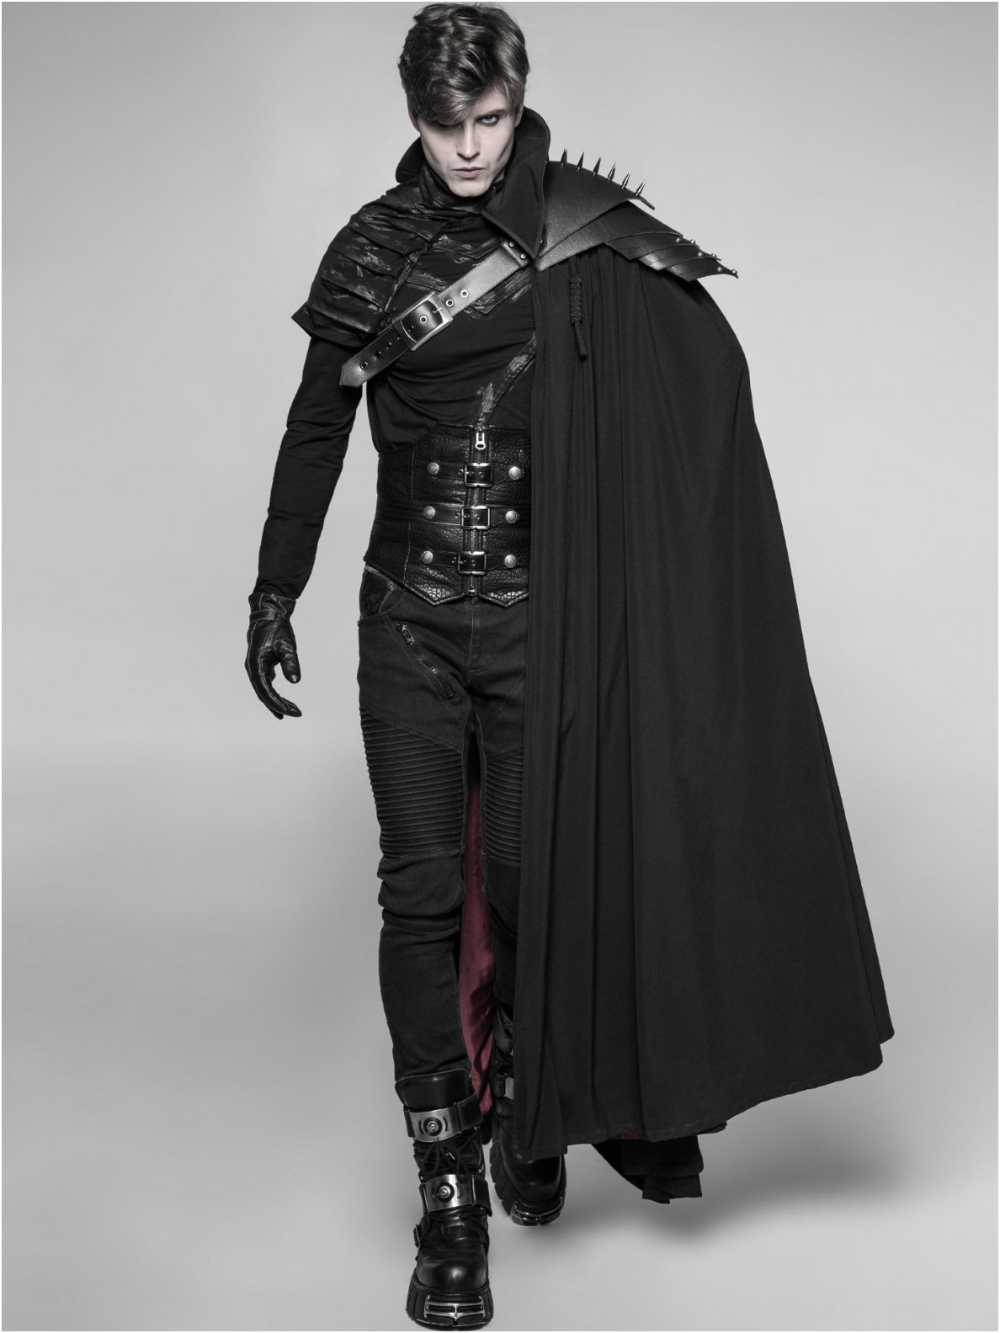 Fantasmagoria - Gothic Clothing & Accessories Shop, based in Lithuania, Europe